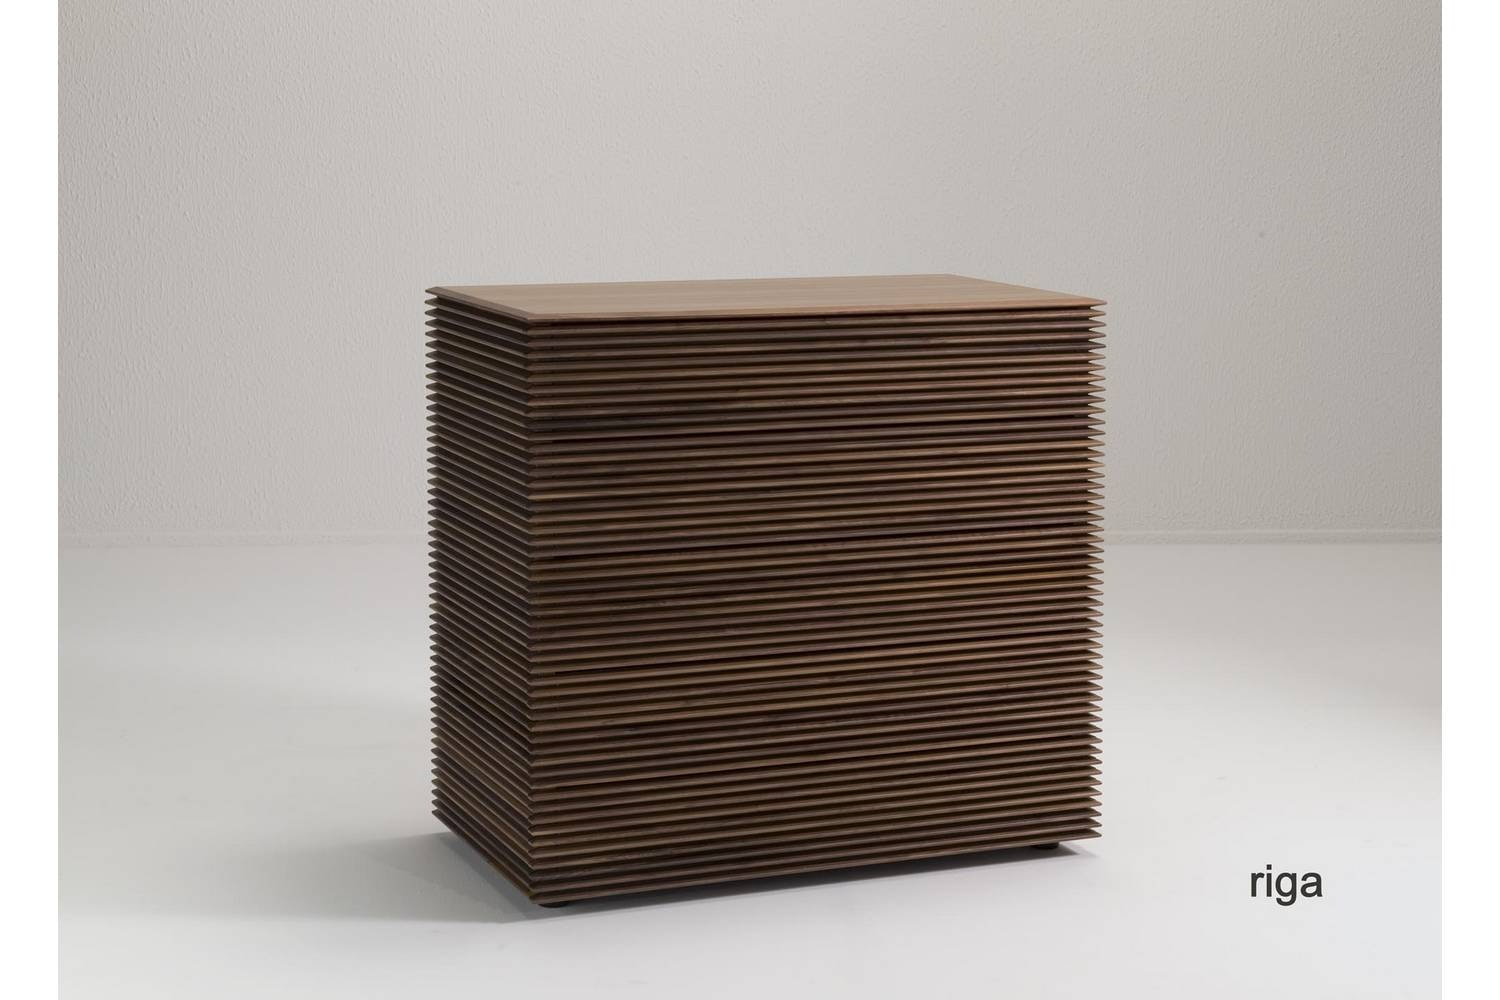 Riga Chest of Drawers by T. Colzani for Porada